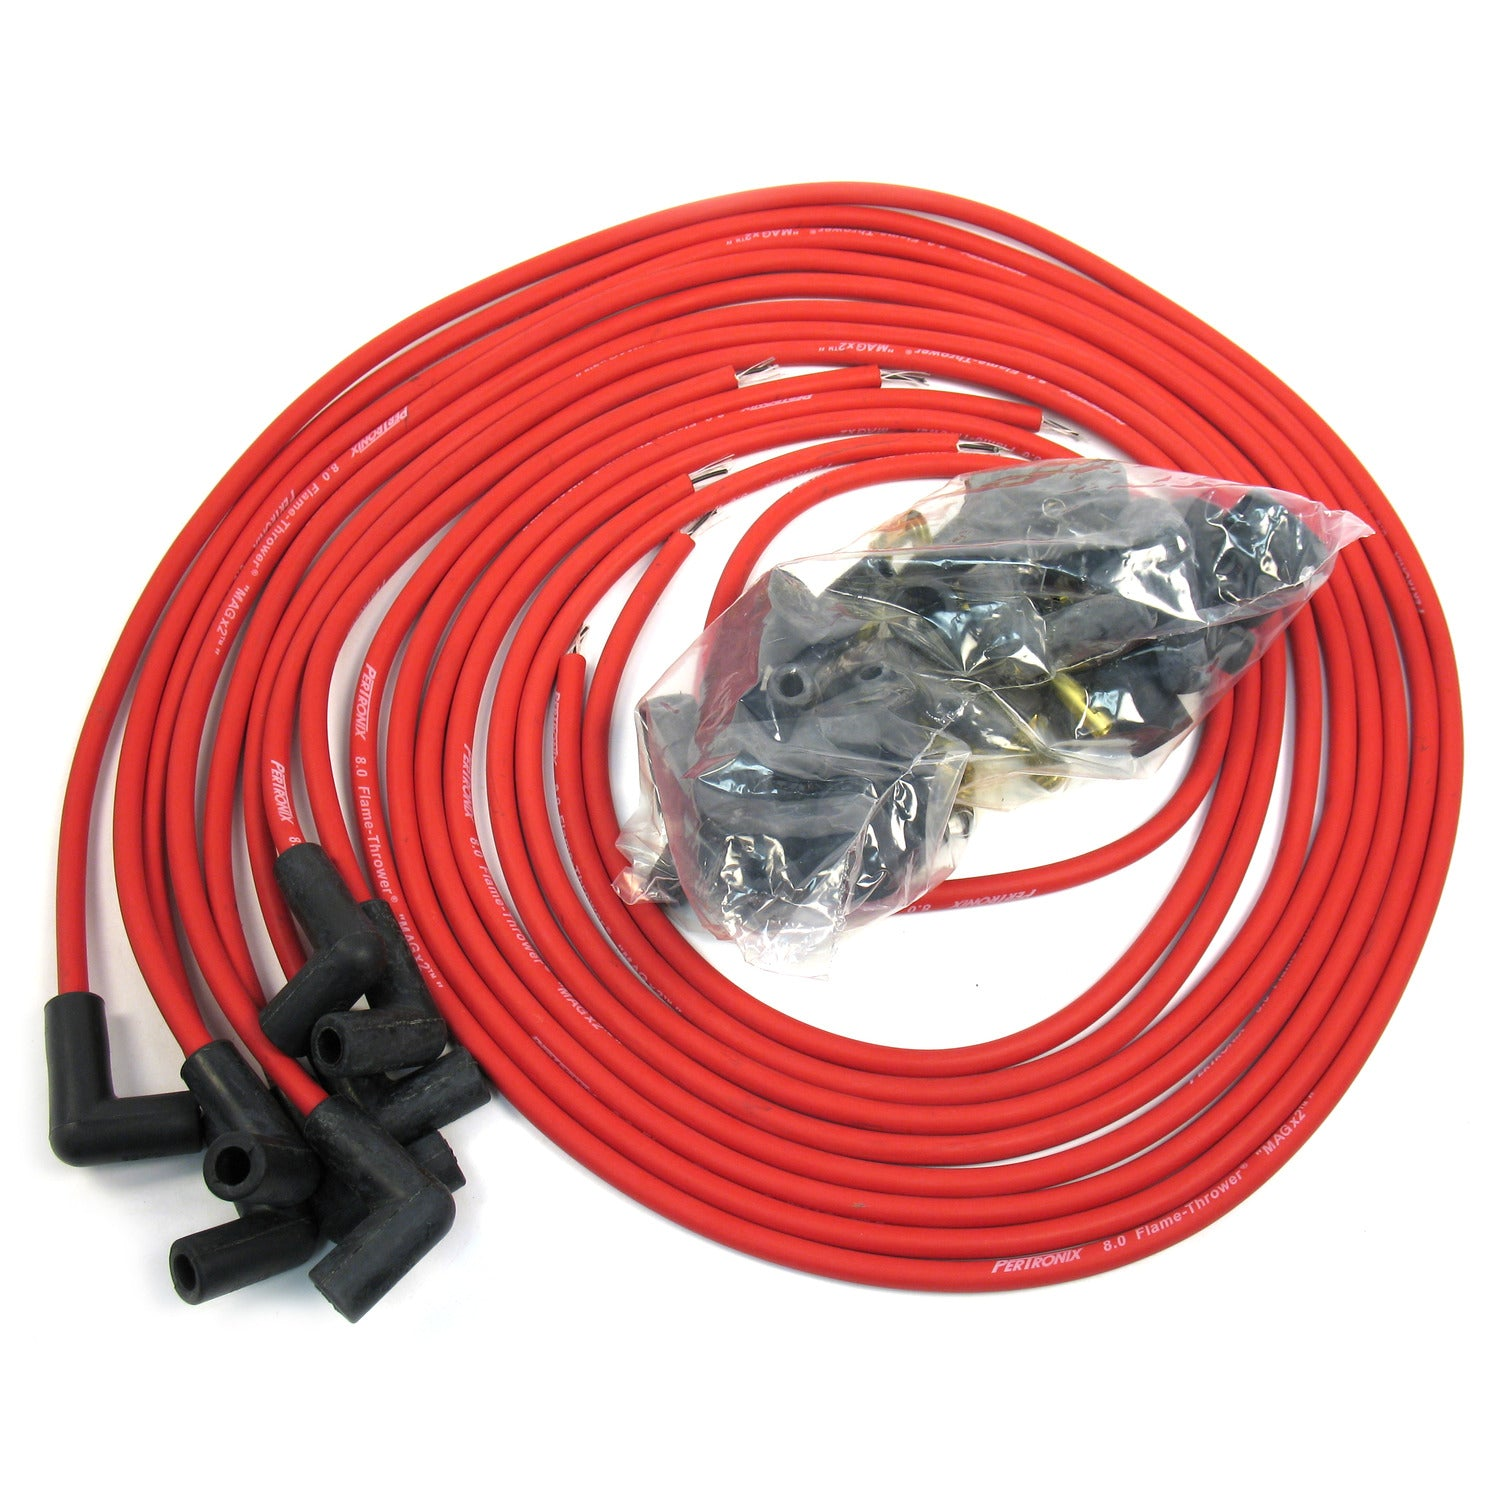 PerTronix 808490 Flame-Thrower Spark Plug Wires 8 cyl 8mm Universal 90 Degree Red